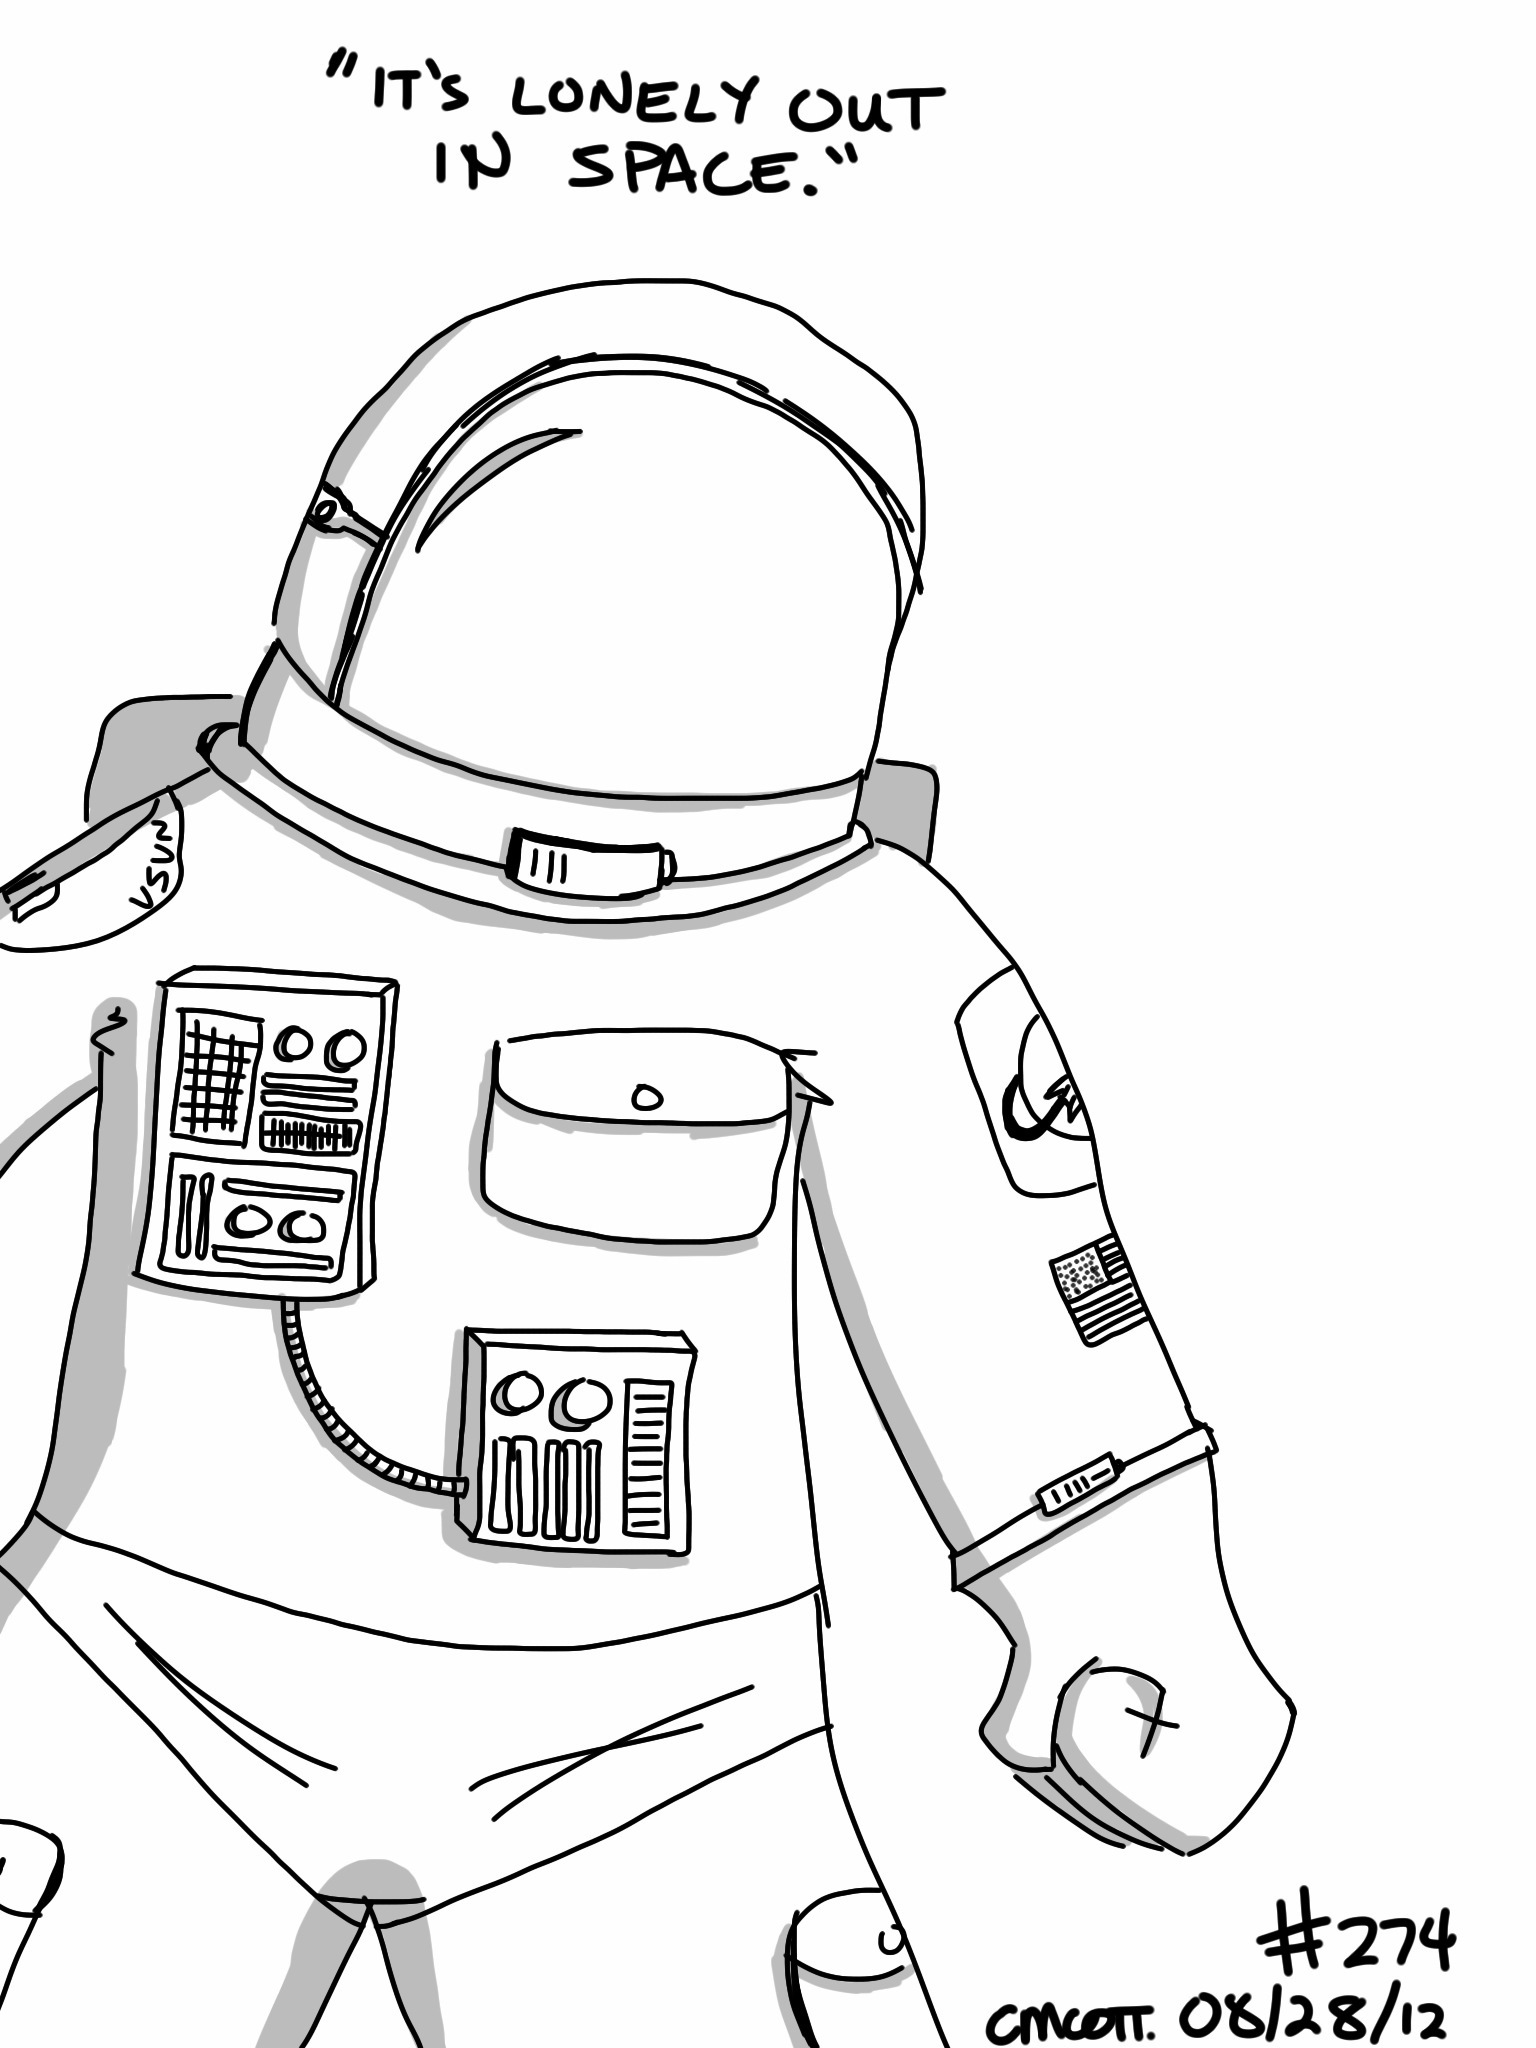 space suit drawing - photo #19